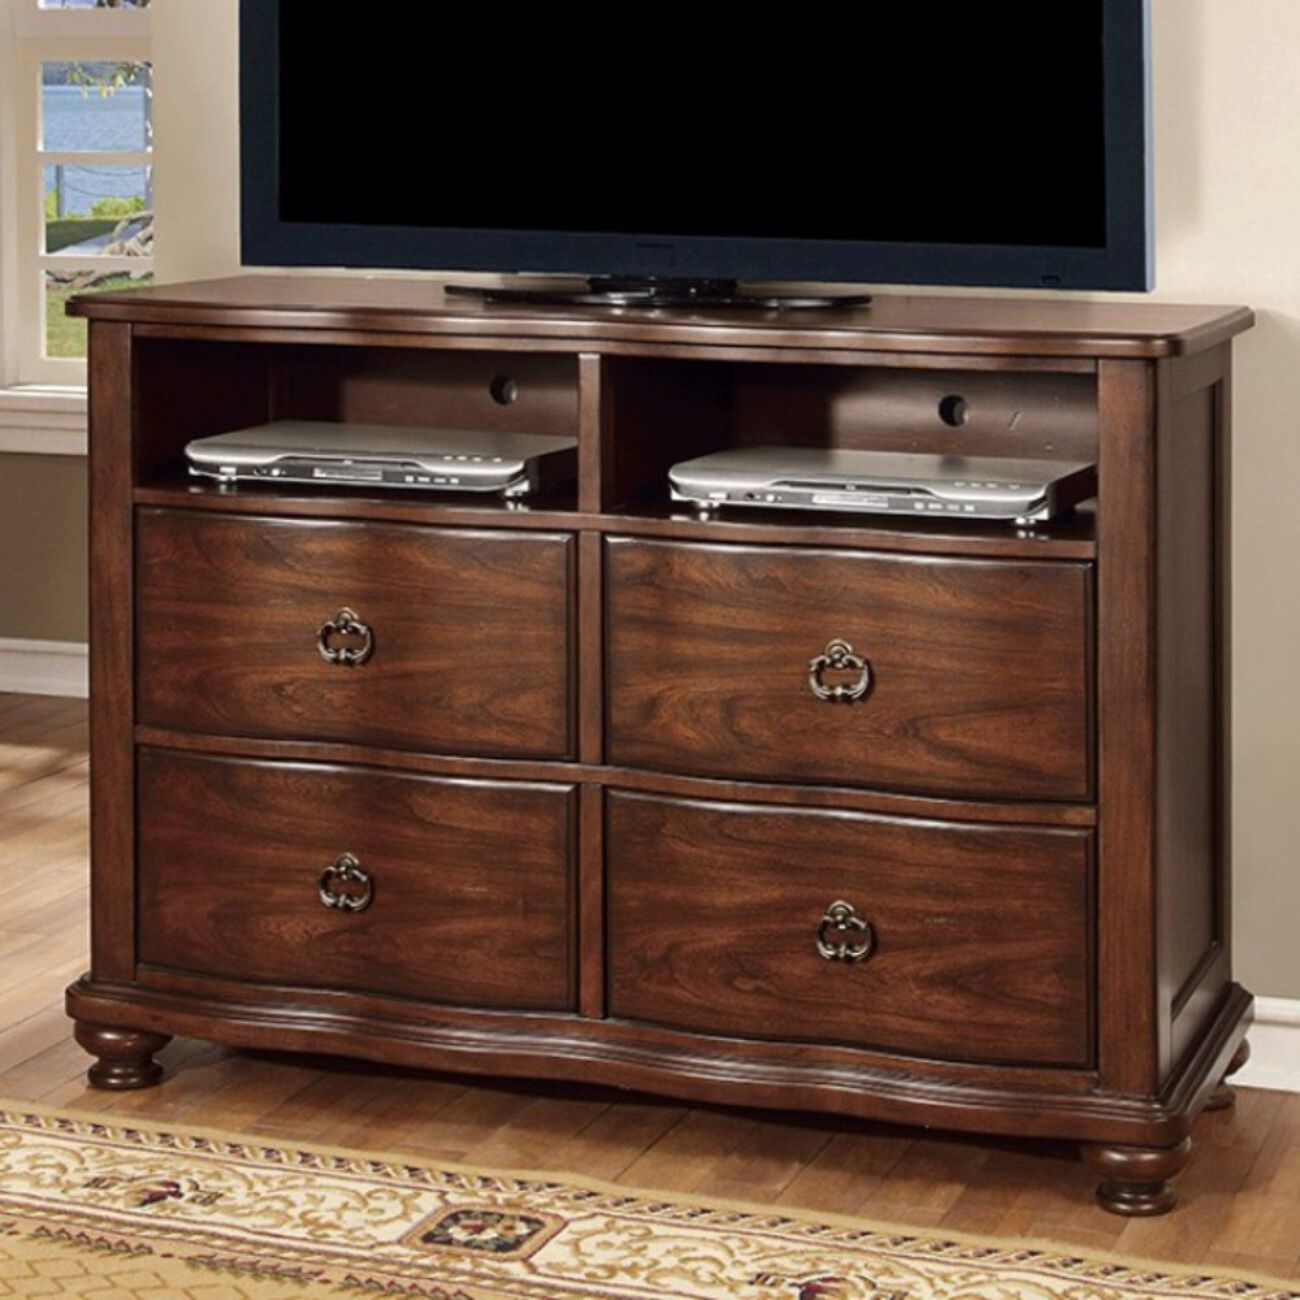 Rectangular Wooden TV stand with 3 Drawers and Open Shelf, Black